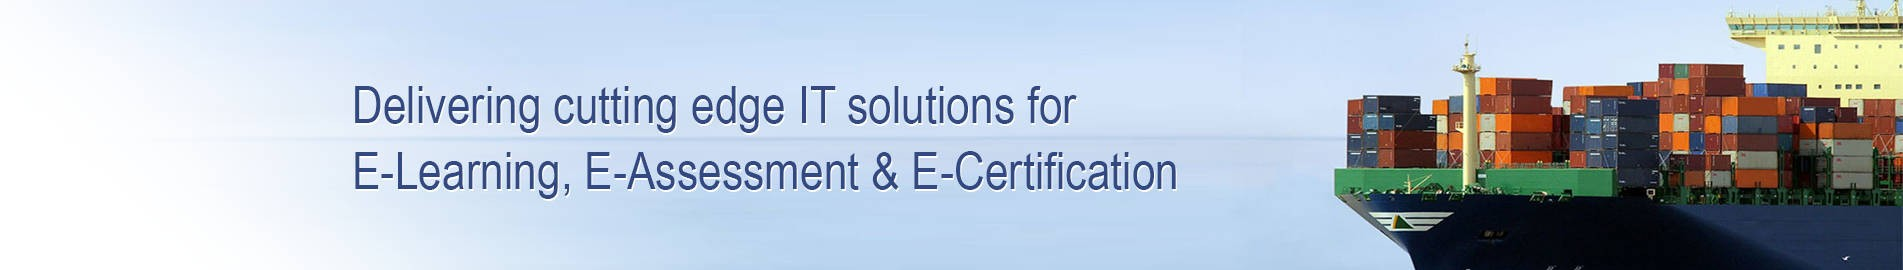 Delivering cutting edge IT solutions for E-Learning, E-Assessment & E-certification